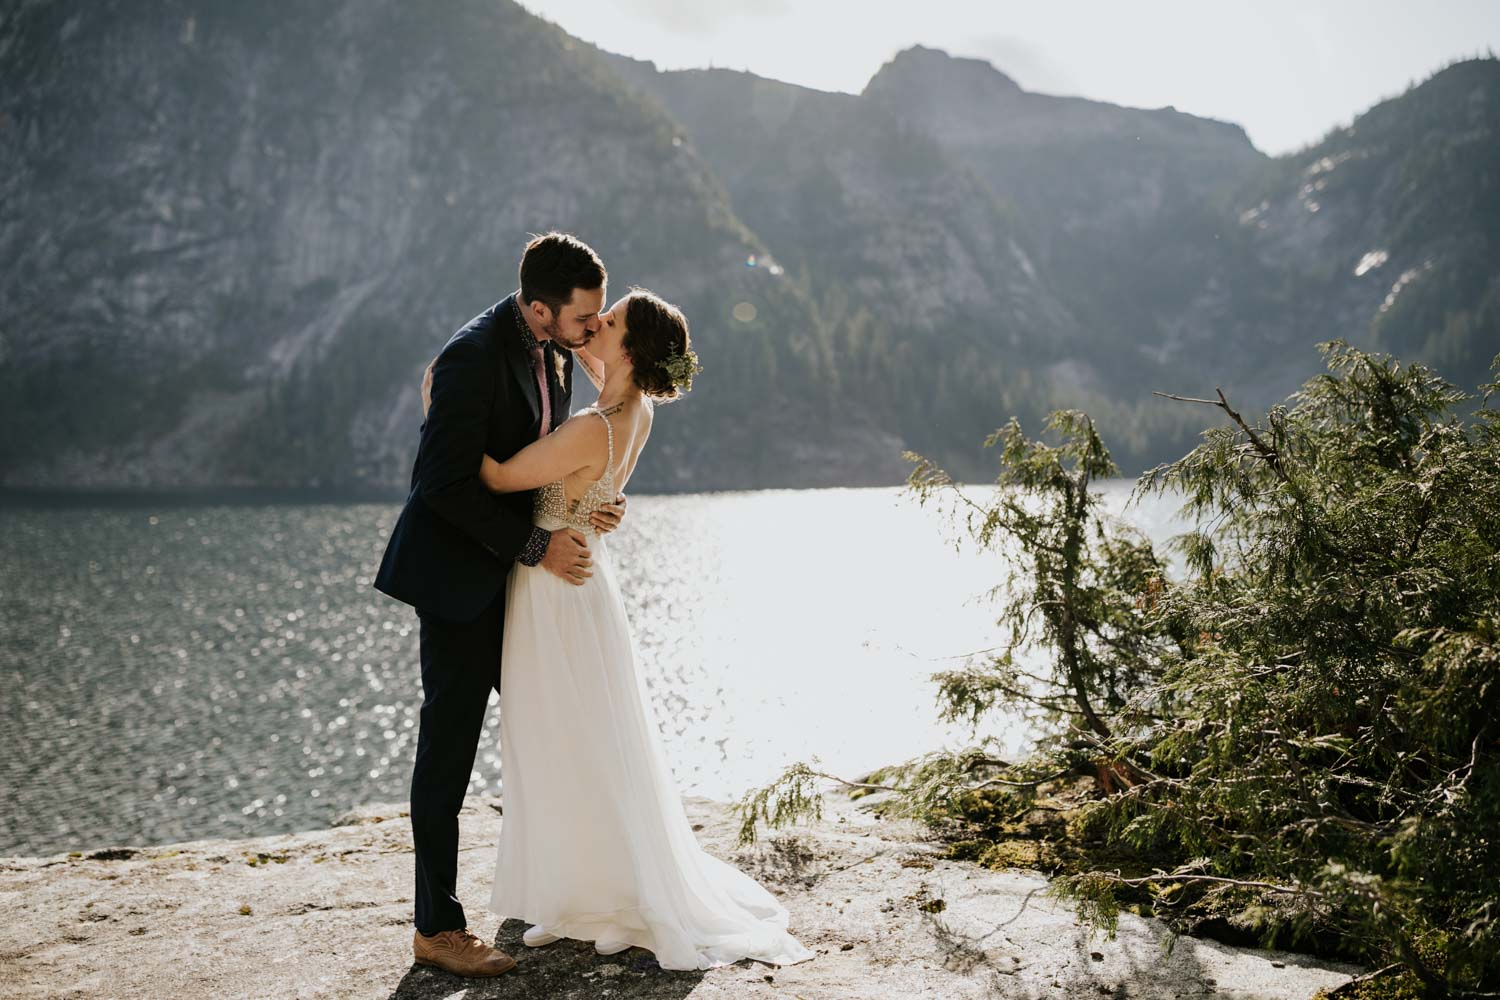 Vancouver Elopement locations in nature with ocean lake and mountain views